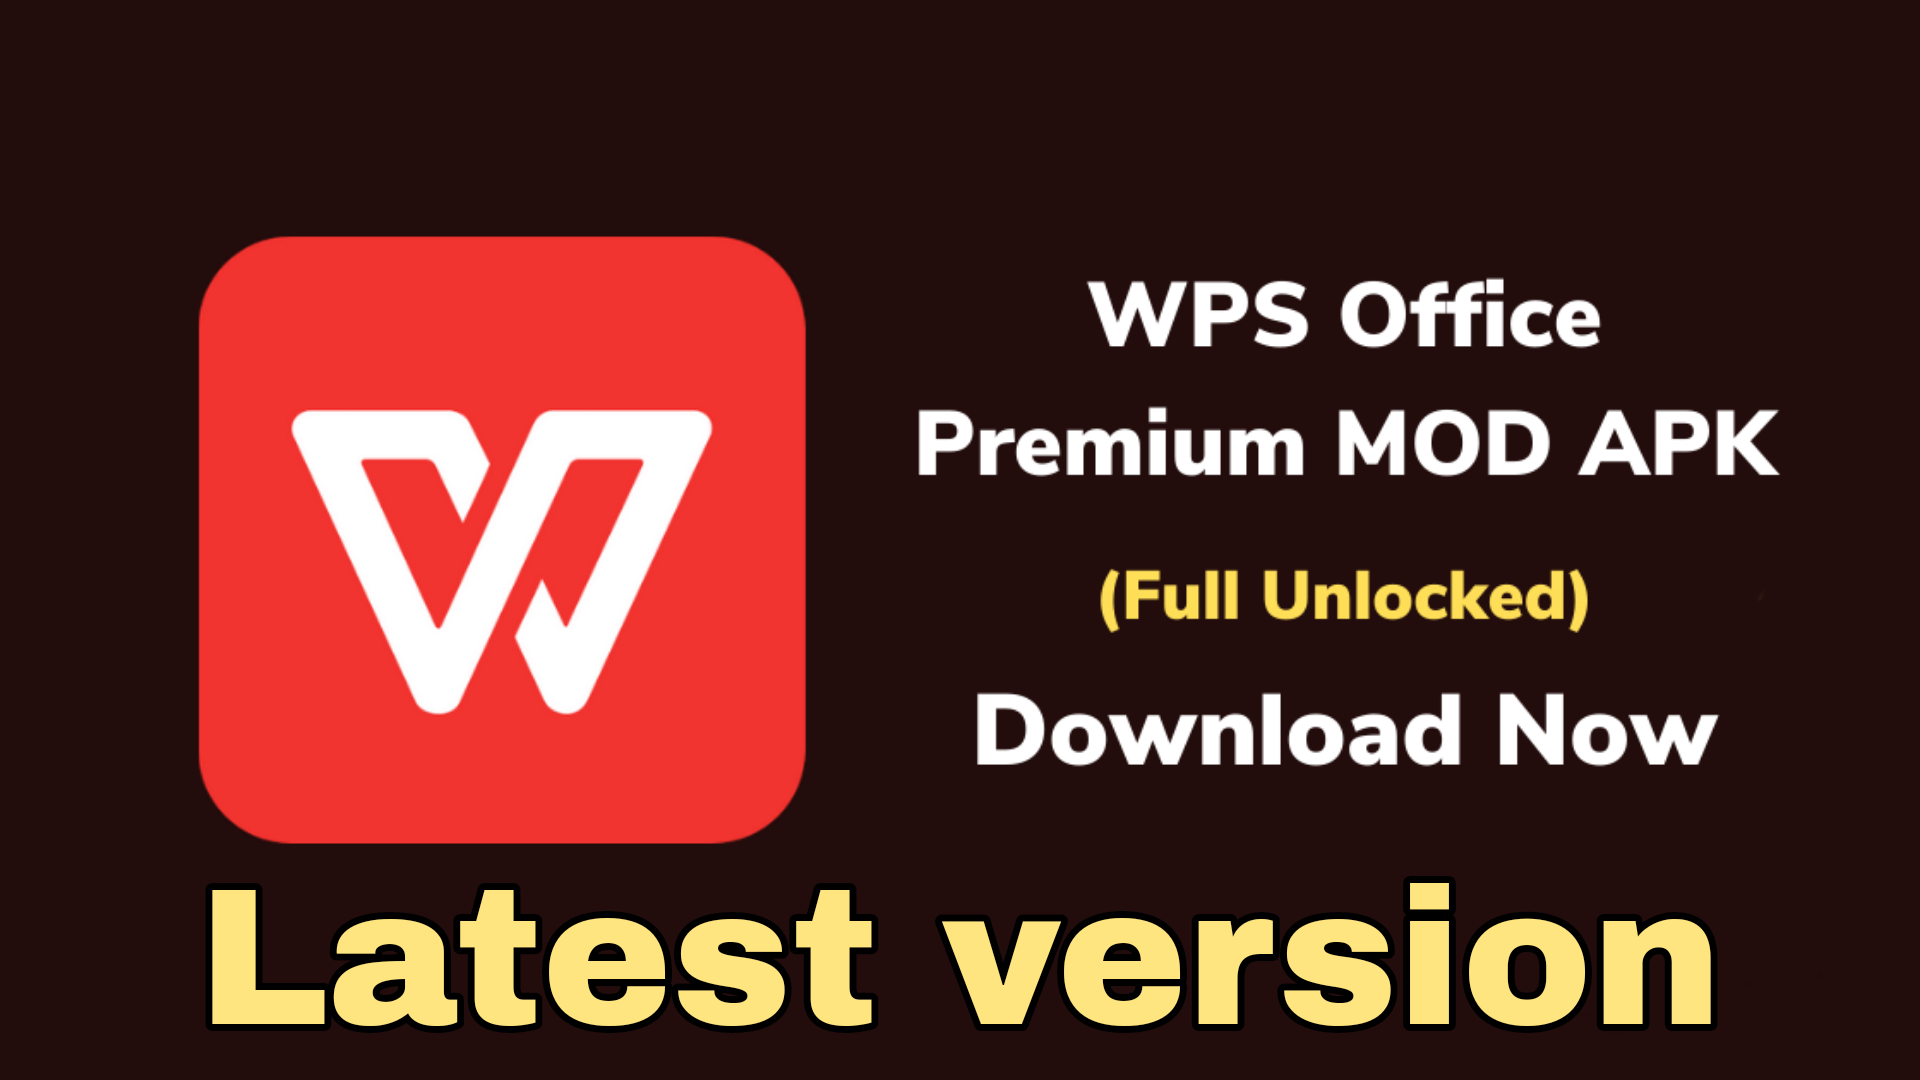 Wps Premium Subscription For Android Apk Download